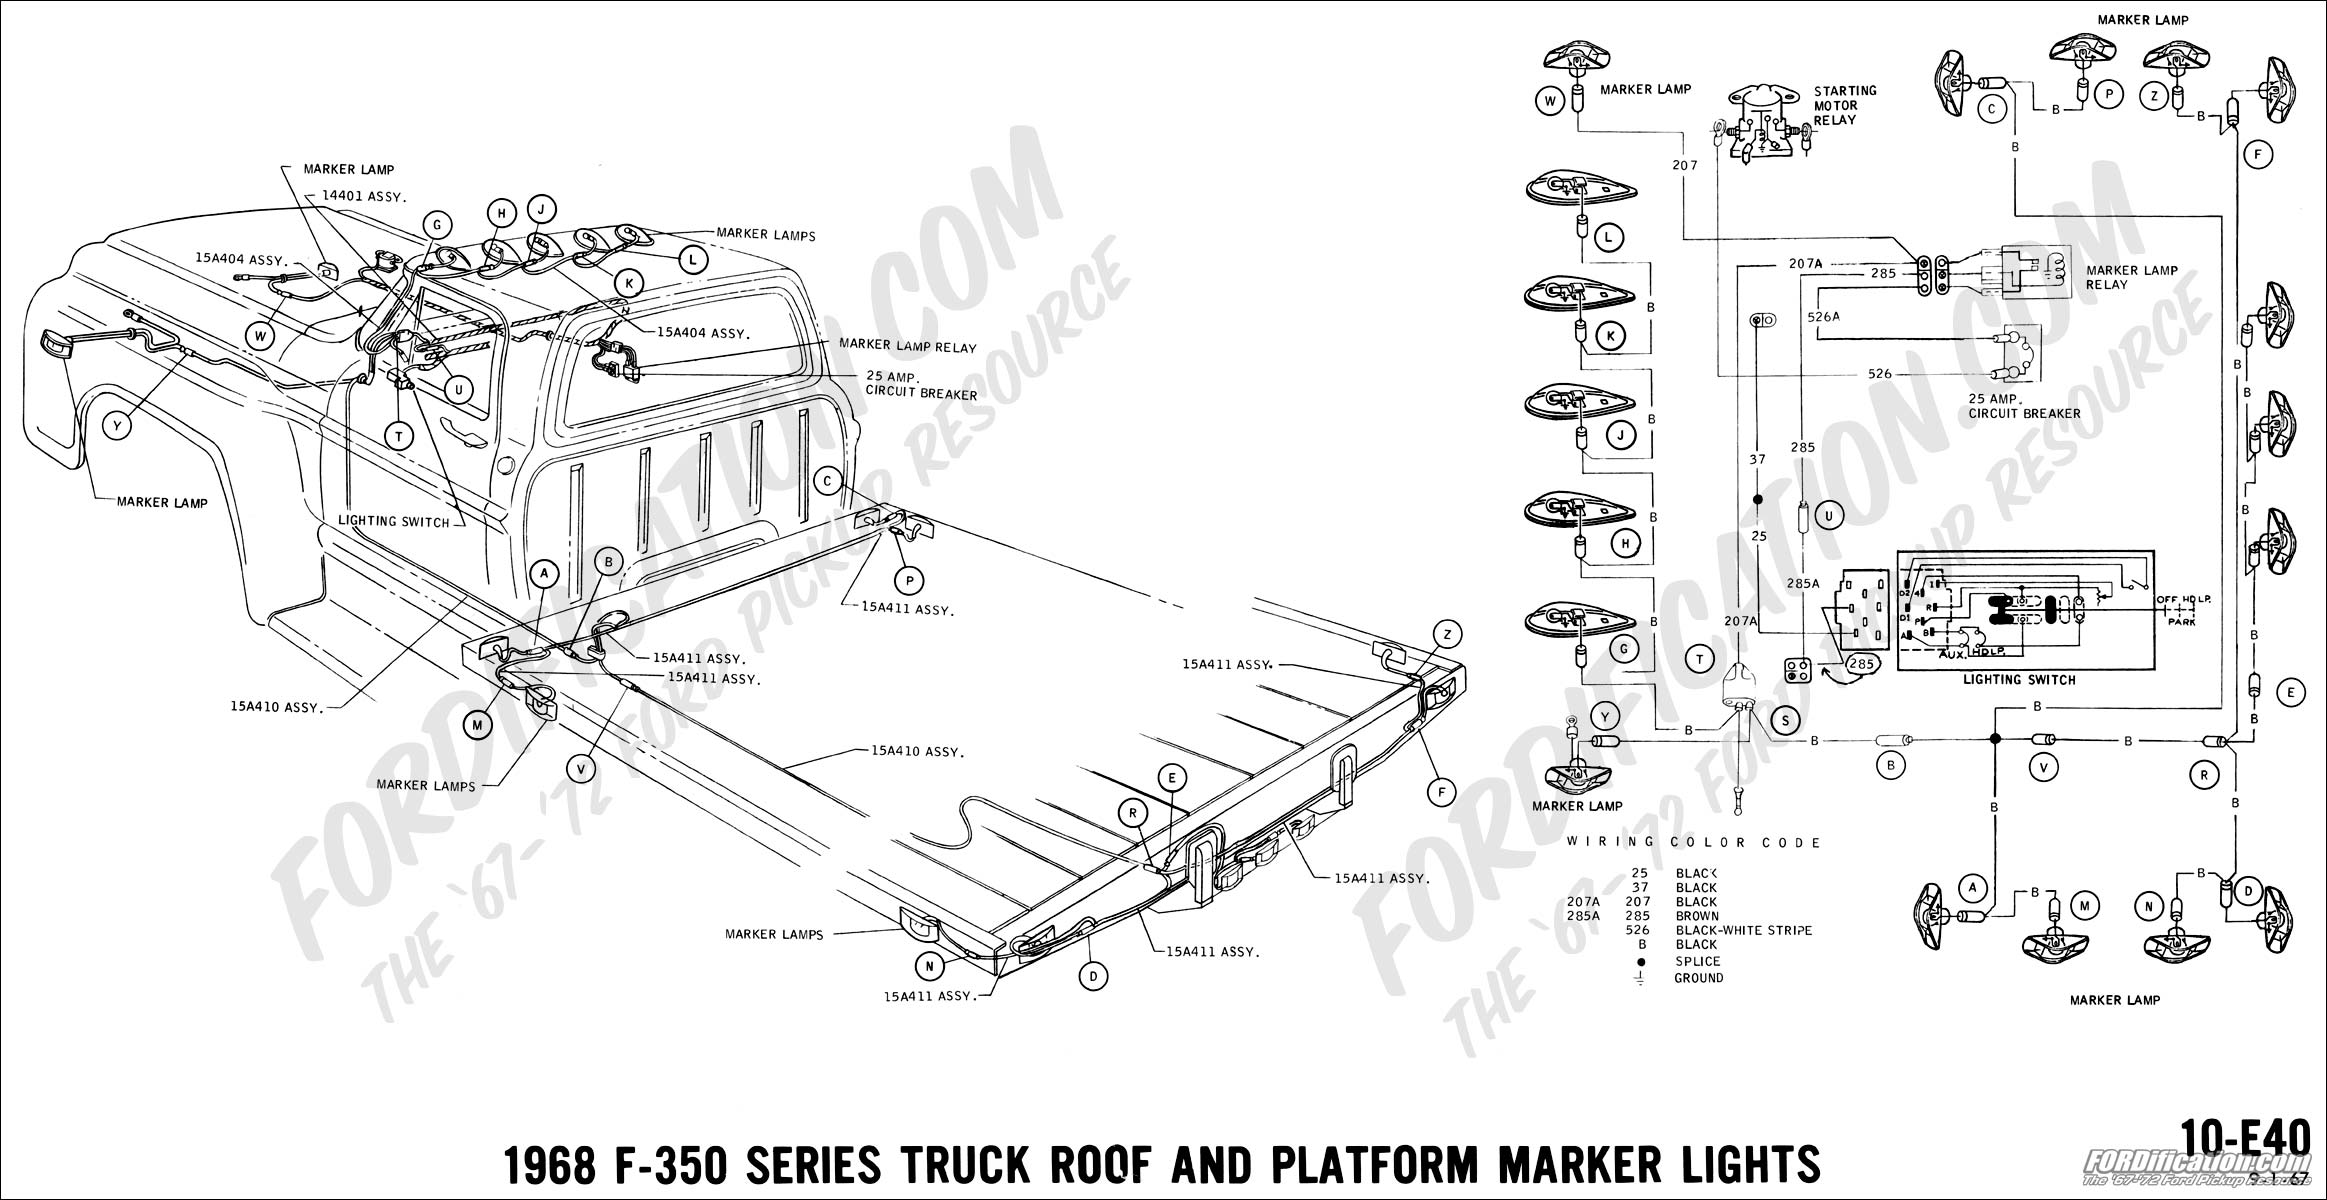 Ford Truck Technical Drawings And Schematics Section H Wiring 2003 Impala Headlight Diagram 1968 F 350 Roof Platform Marker Lights